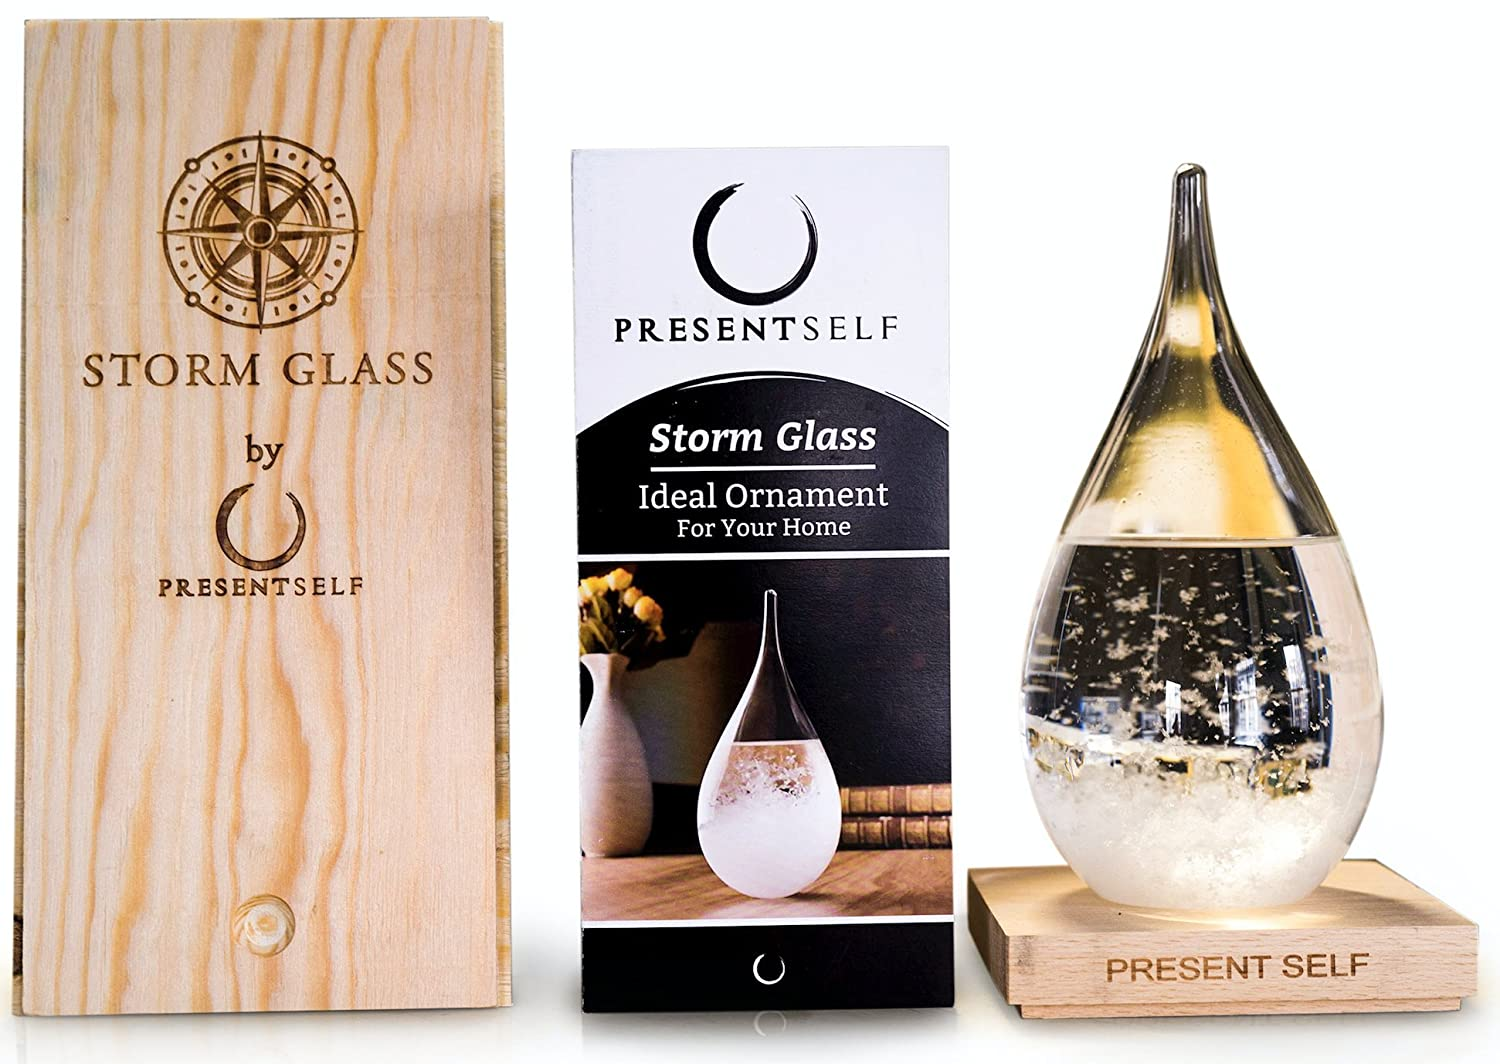 Large Storm Glass Liquid Pseudo Barometer and Decorative Bottle in Gorgeous Wooden Gift Box | Unique Conversation Starter and Elegant Home Decor Centerpiece by Present Self